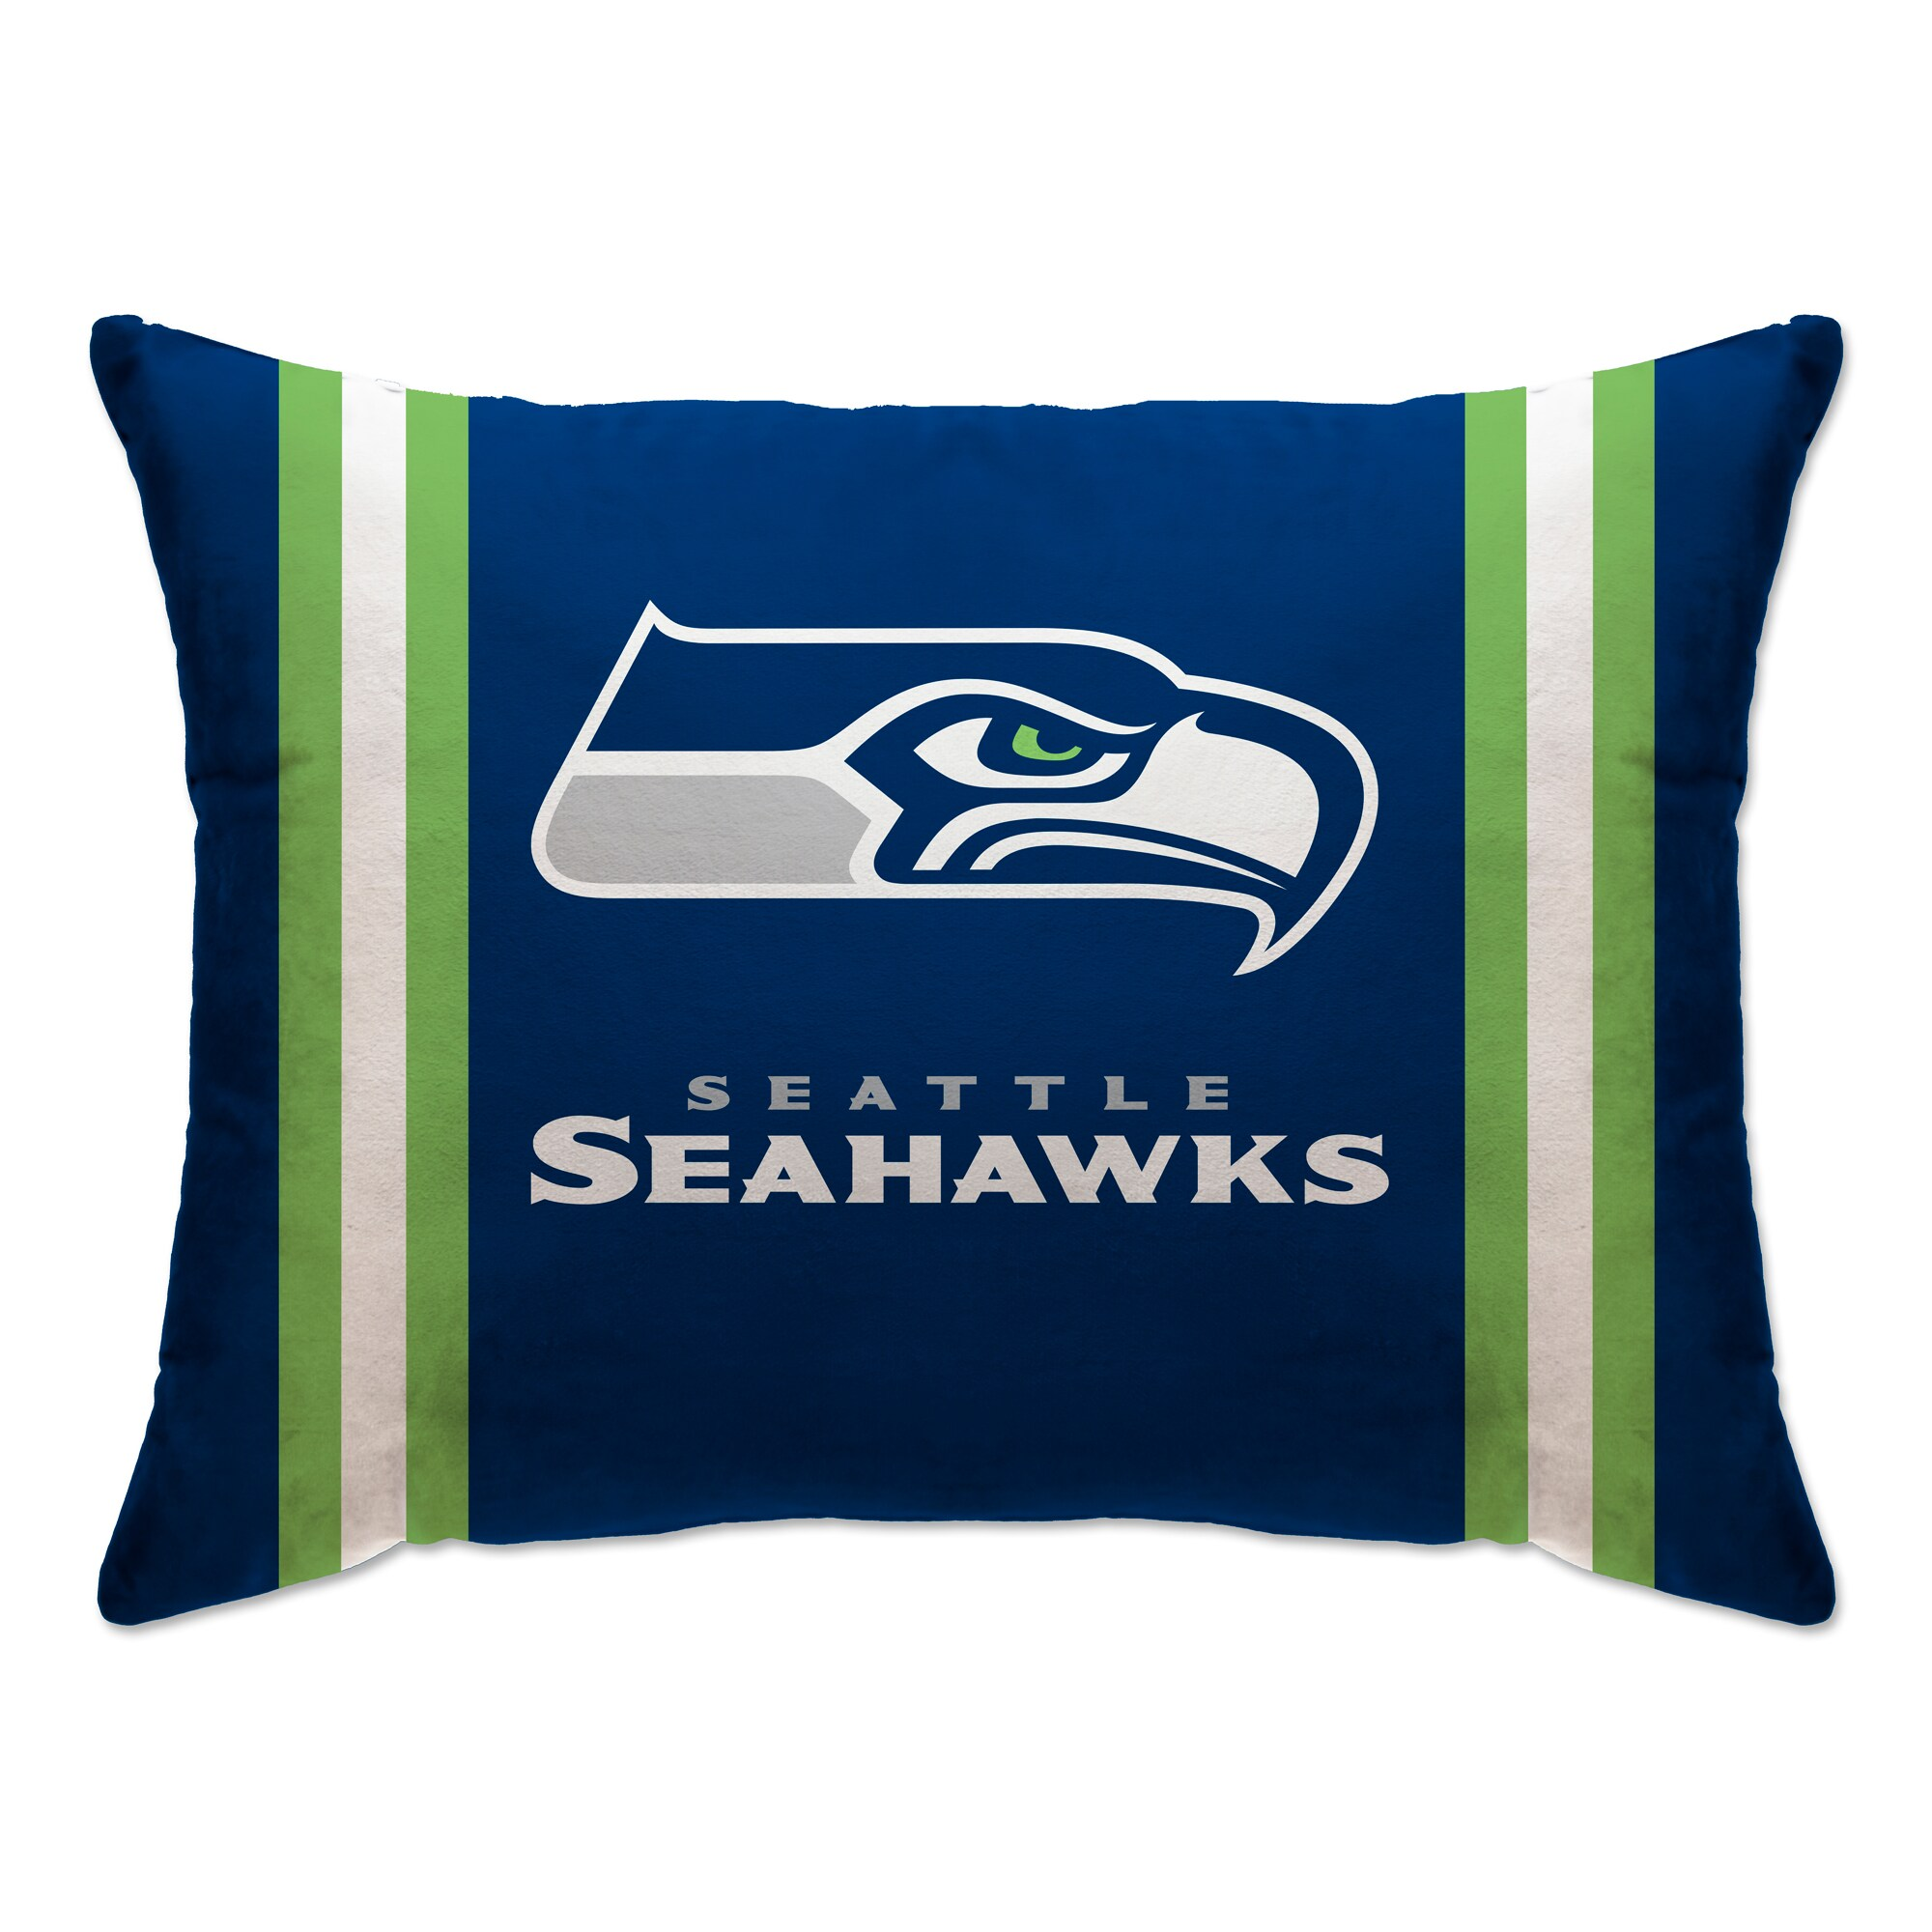 "Seattle Seahawks 20"" x 26"" Plush Bed Pillow - Blue"